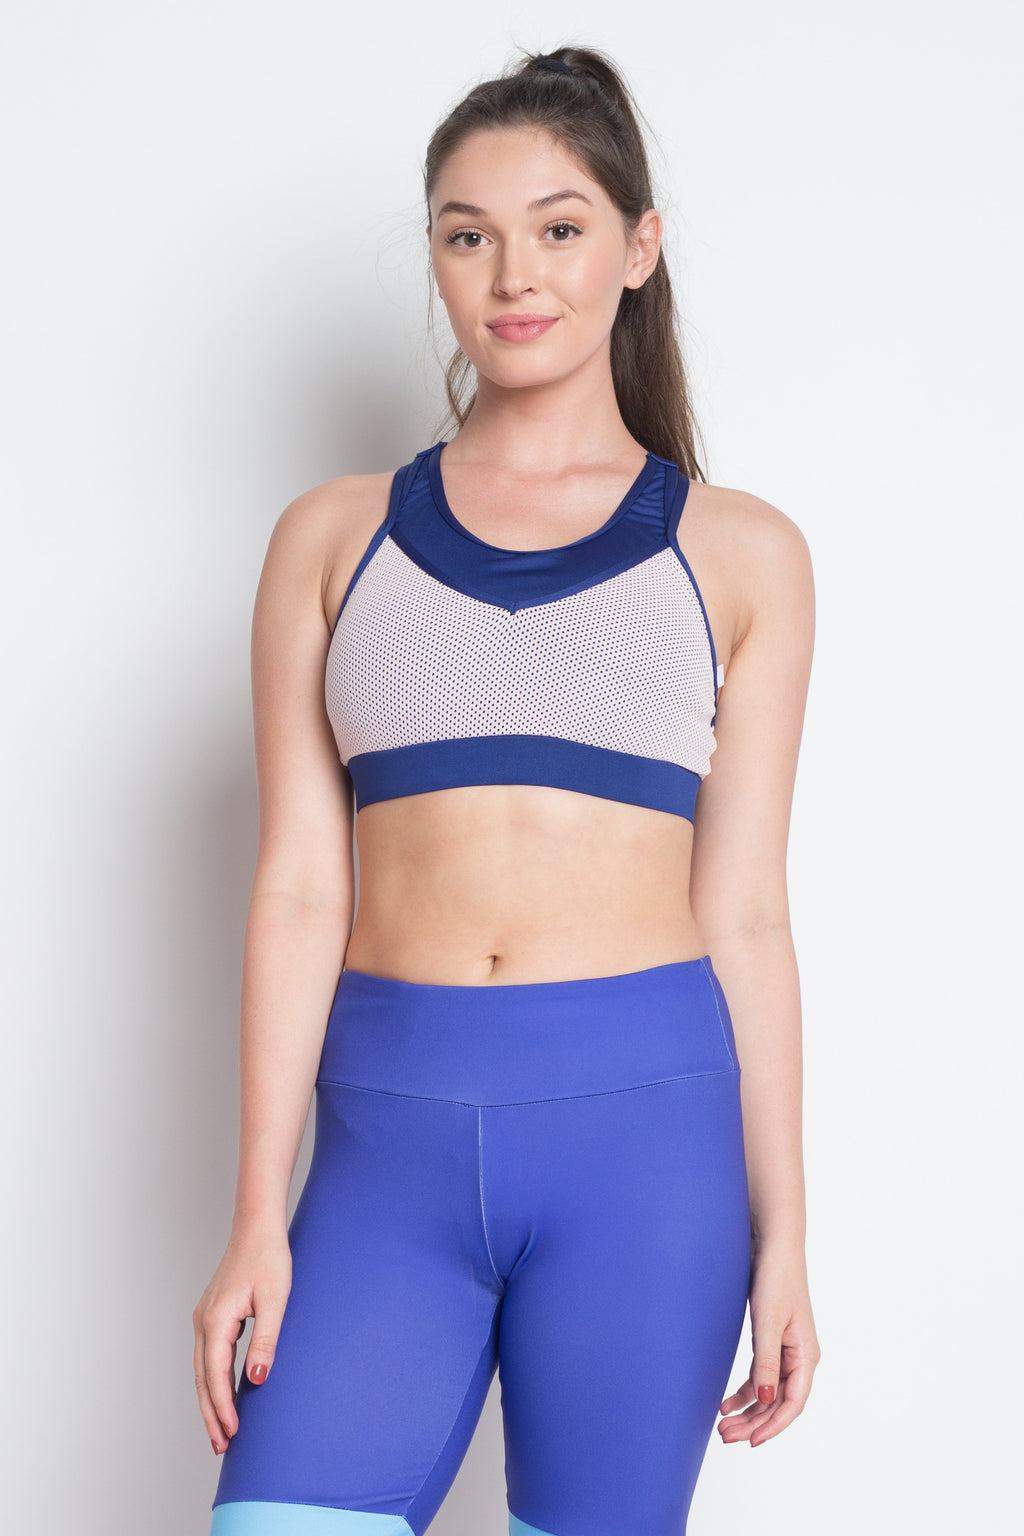 DOUBLE STRAP SPORTS BRA - wearevel